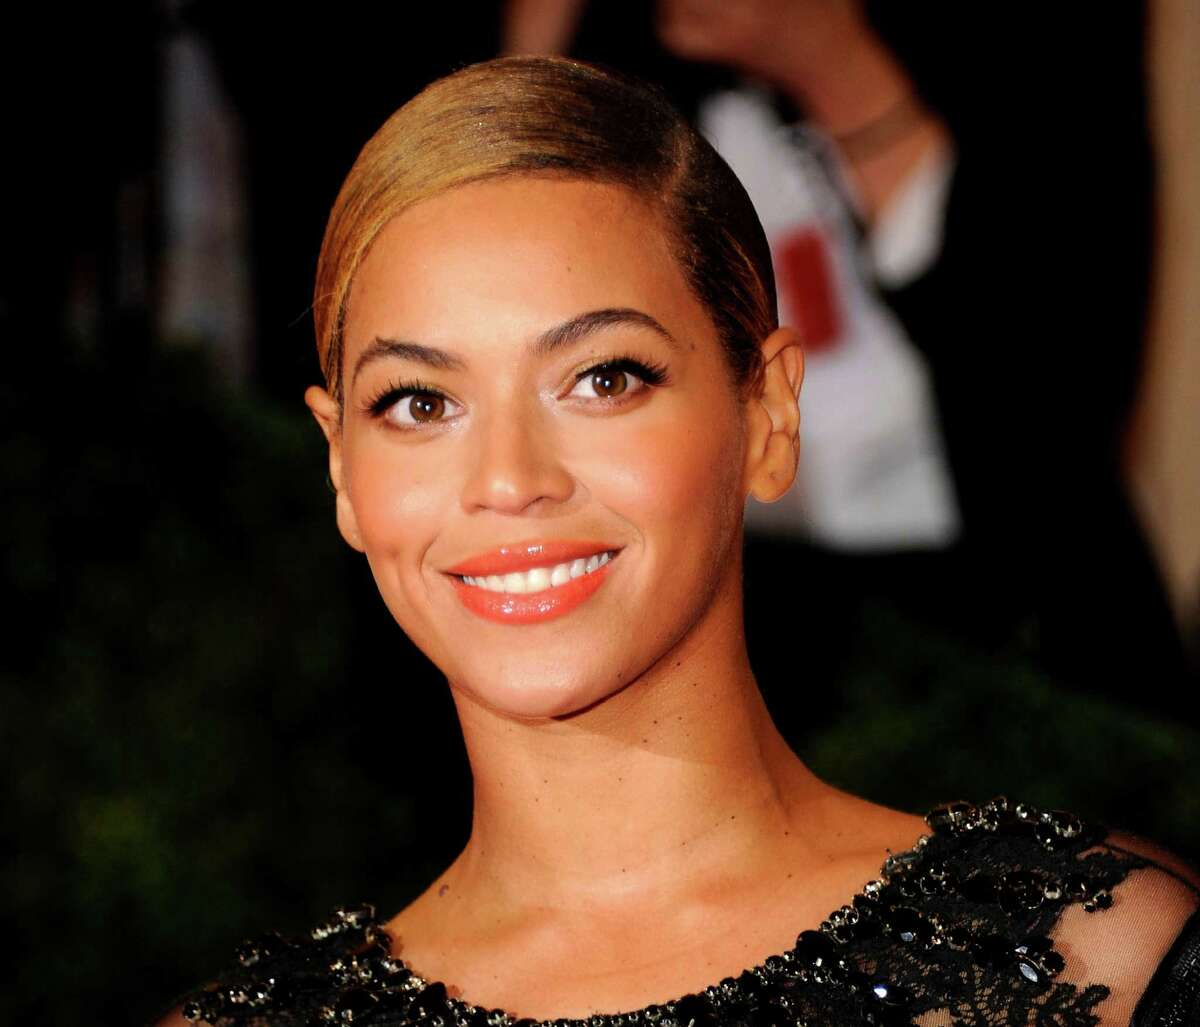 FILE - This May 7, 2012 file photo shows Beyonce Knowles at the Metropolitan Museum of Art Costume Institute gala benefit in New York. Beyonce will sing the national anthem at President Barack Obama's inauguration ceremony. The committee planning the Jan. 21 event also announced Wednesday that Kelly Clarkson will perform